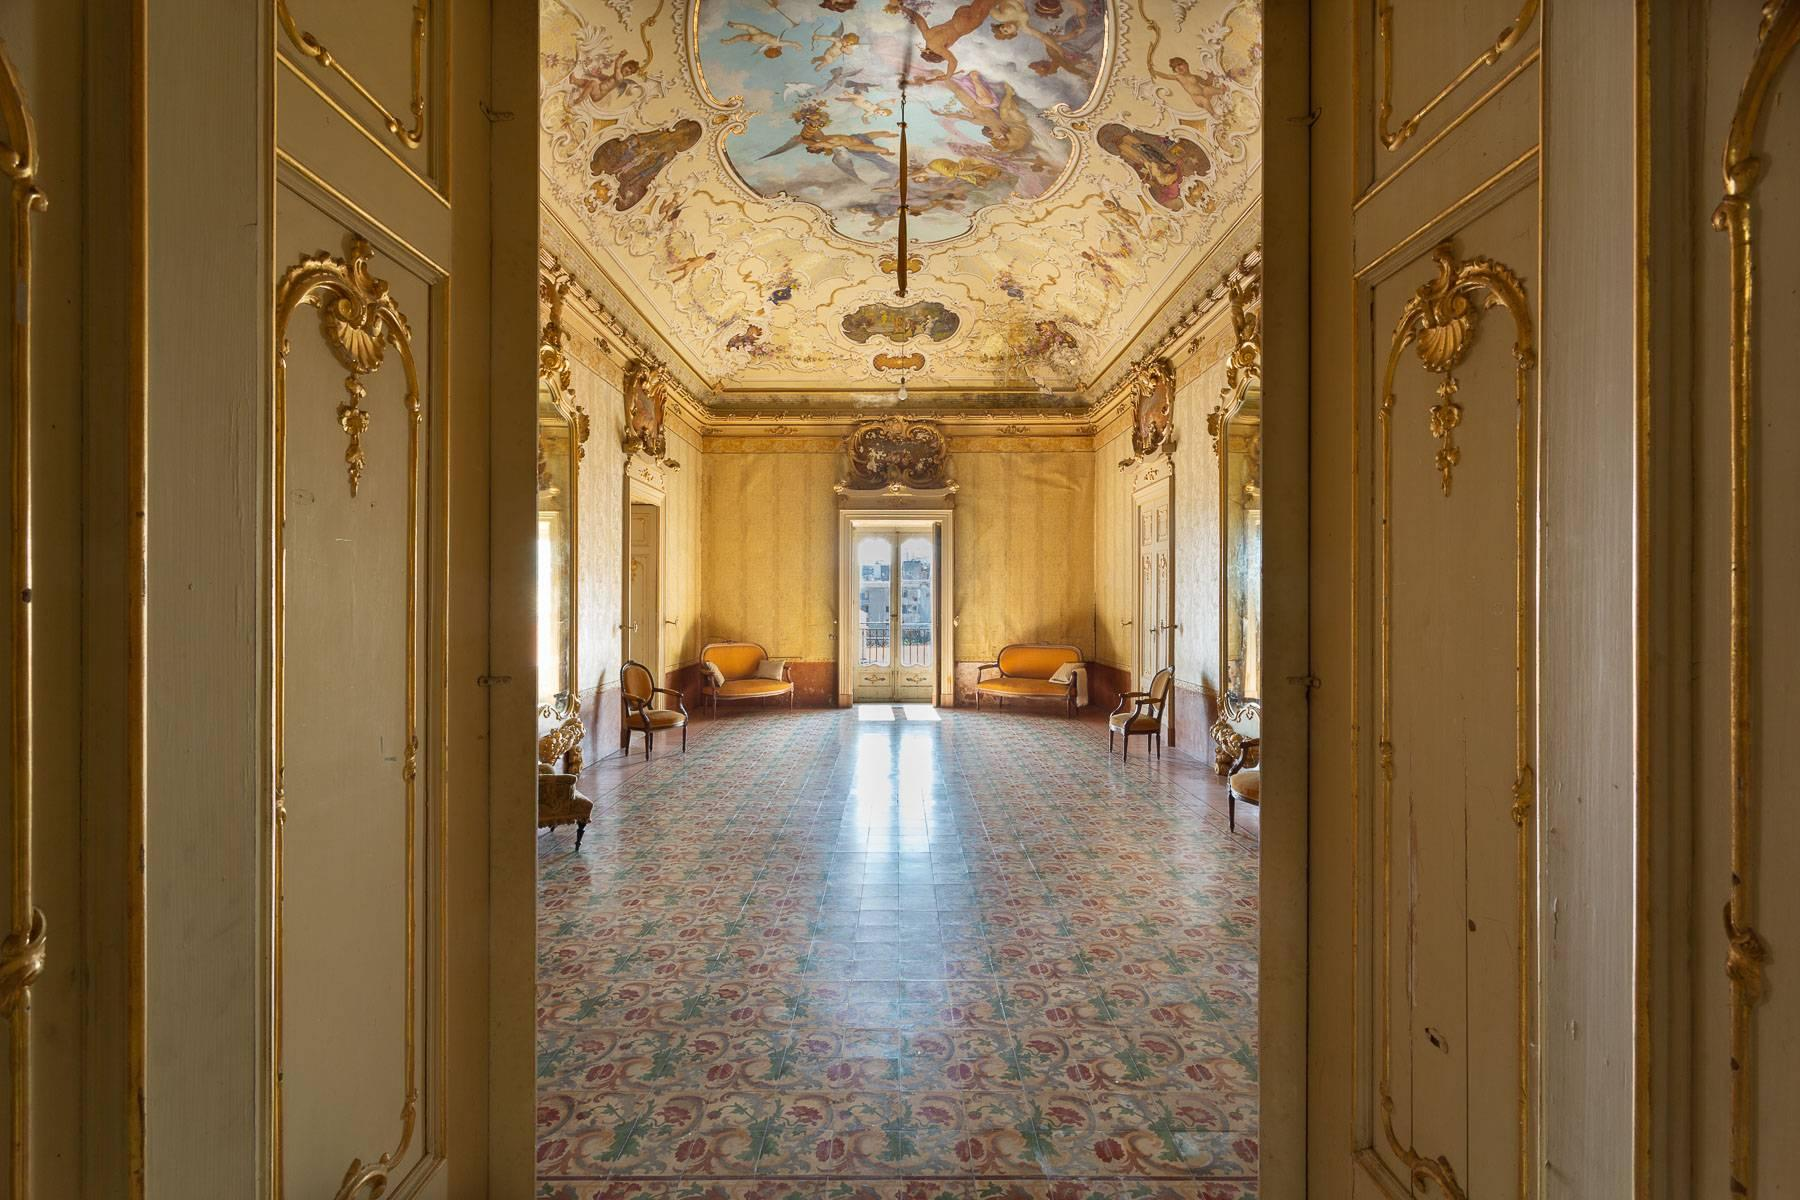 Noble Palace in Palazzolo Acreide - 1